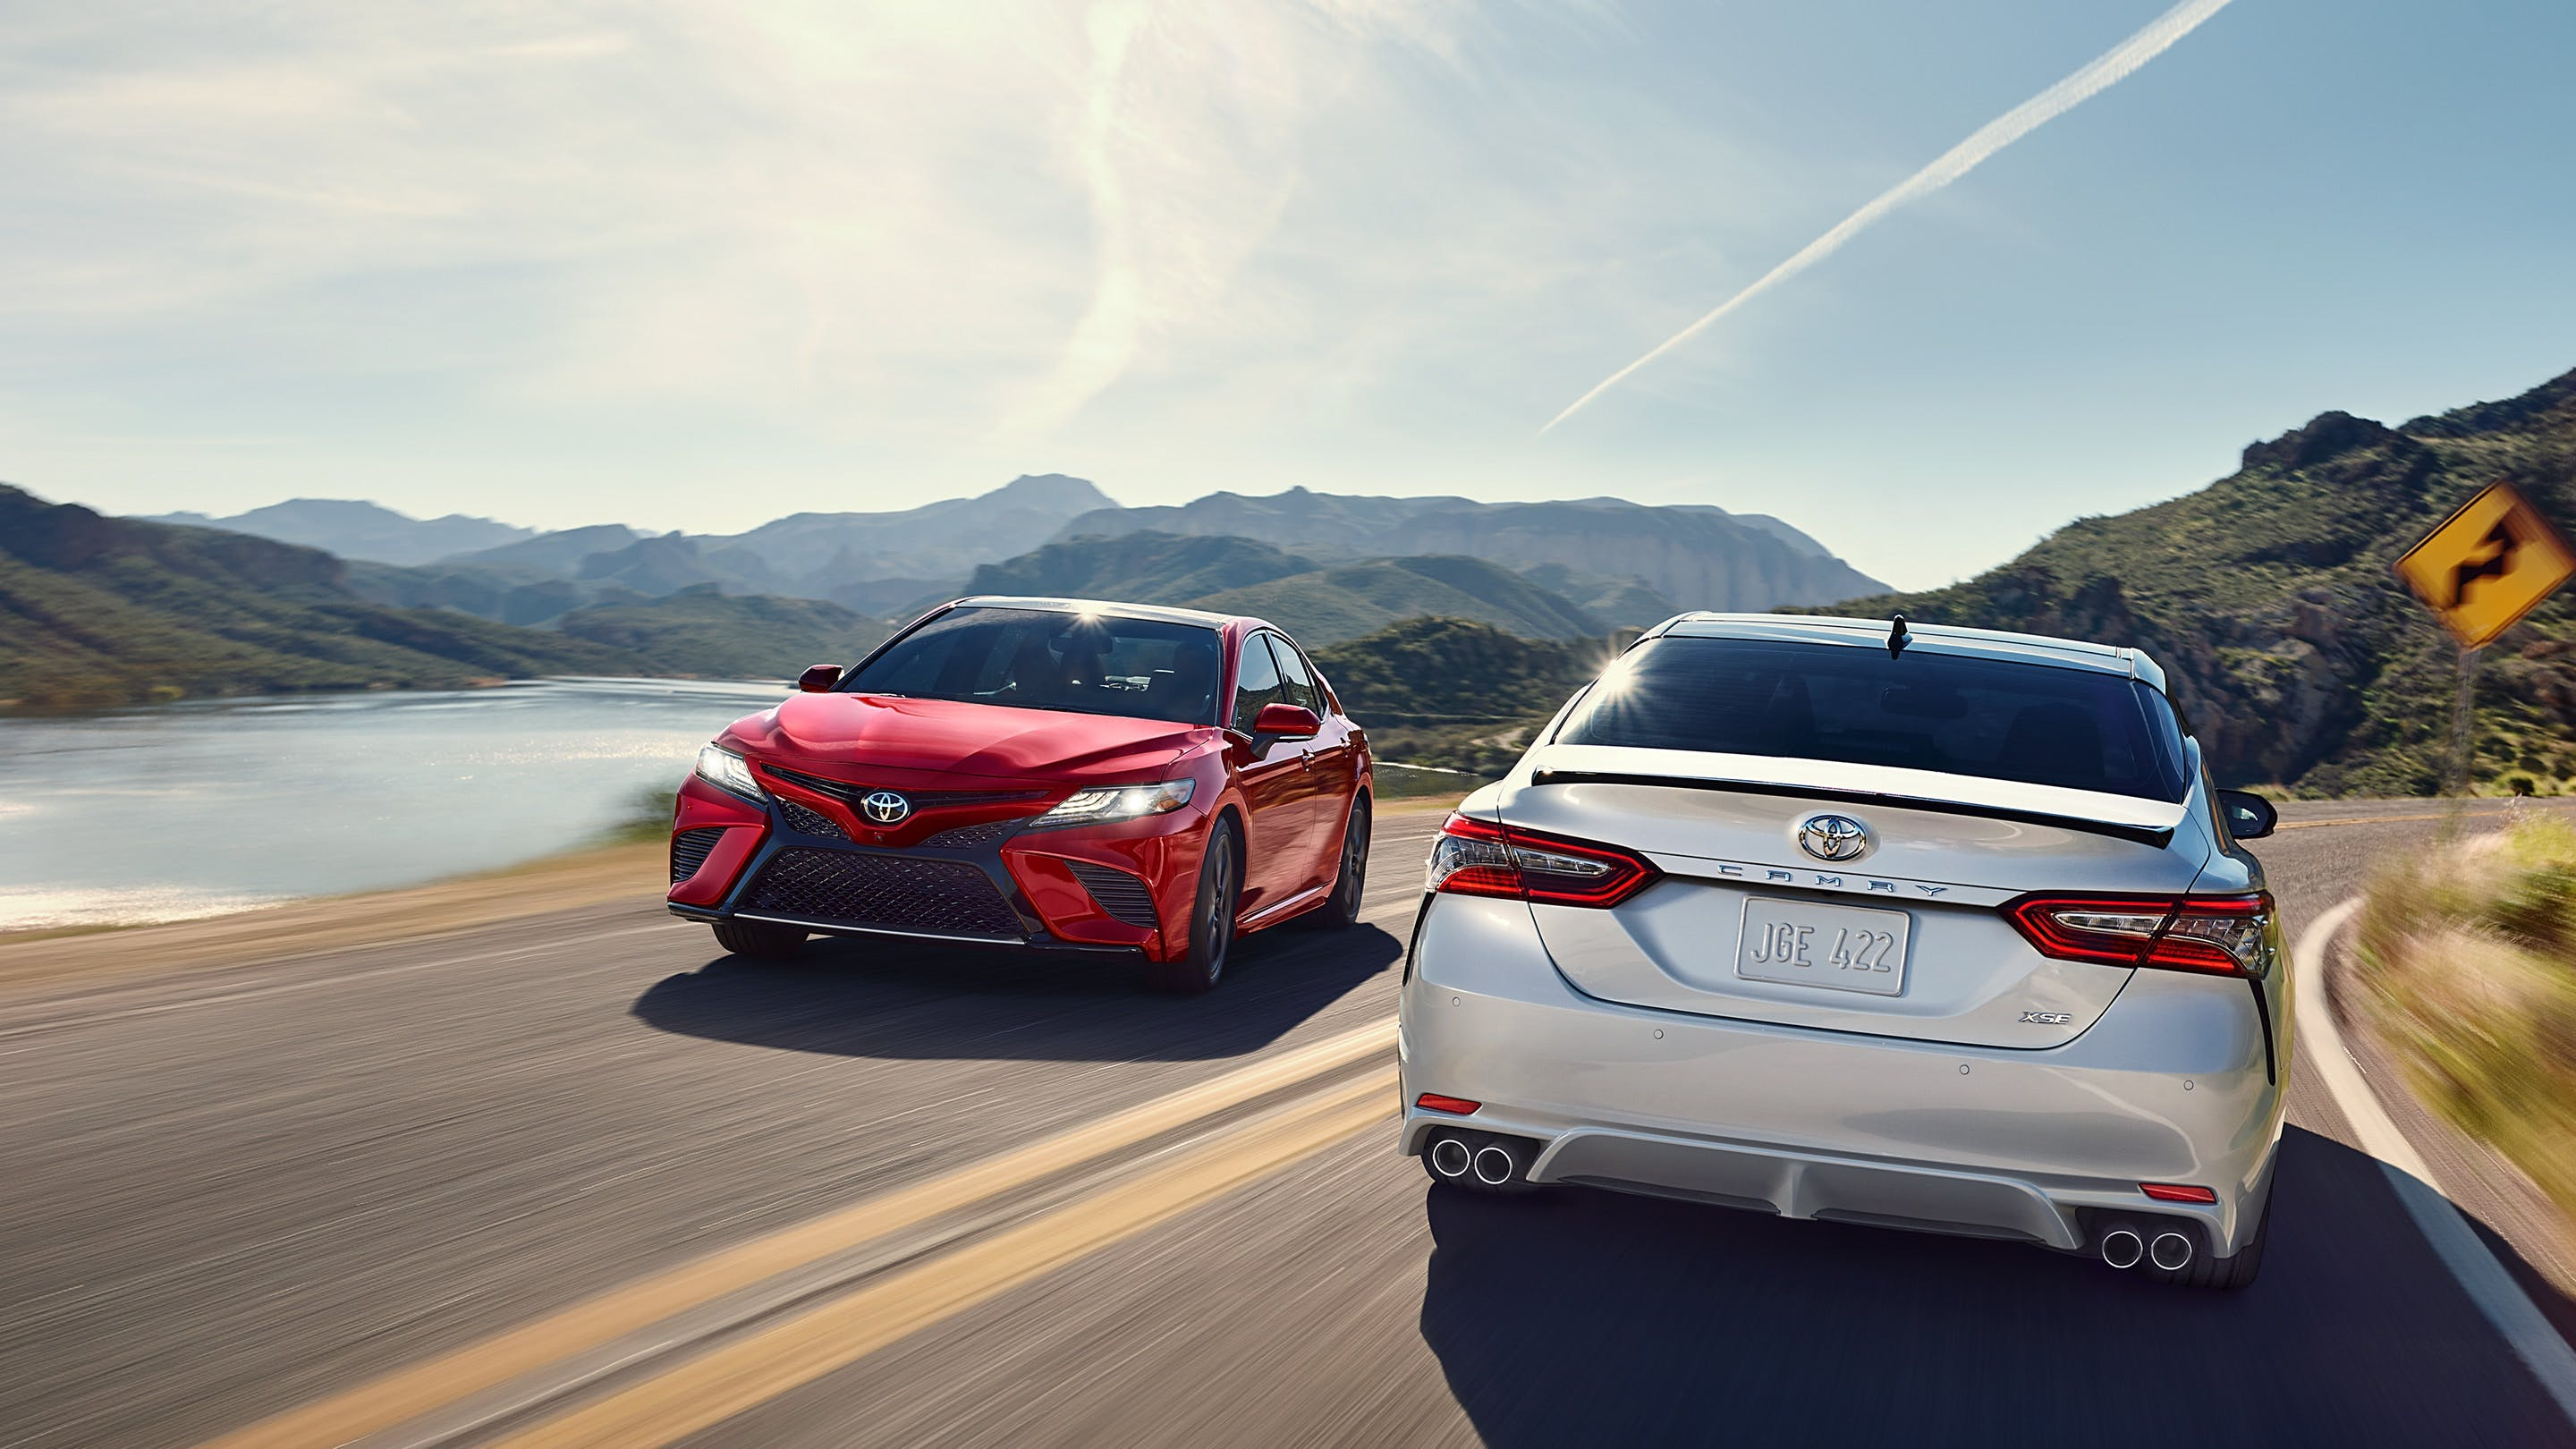 Test Drive the 2020 Toyota Camry near New Castle PA